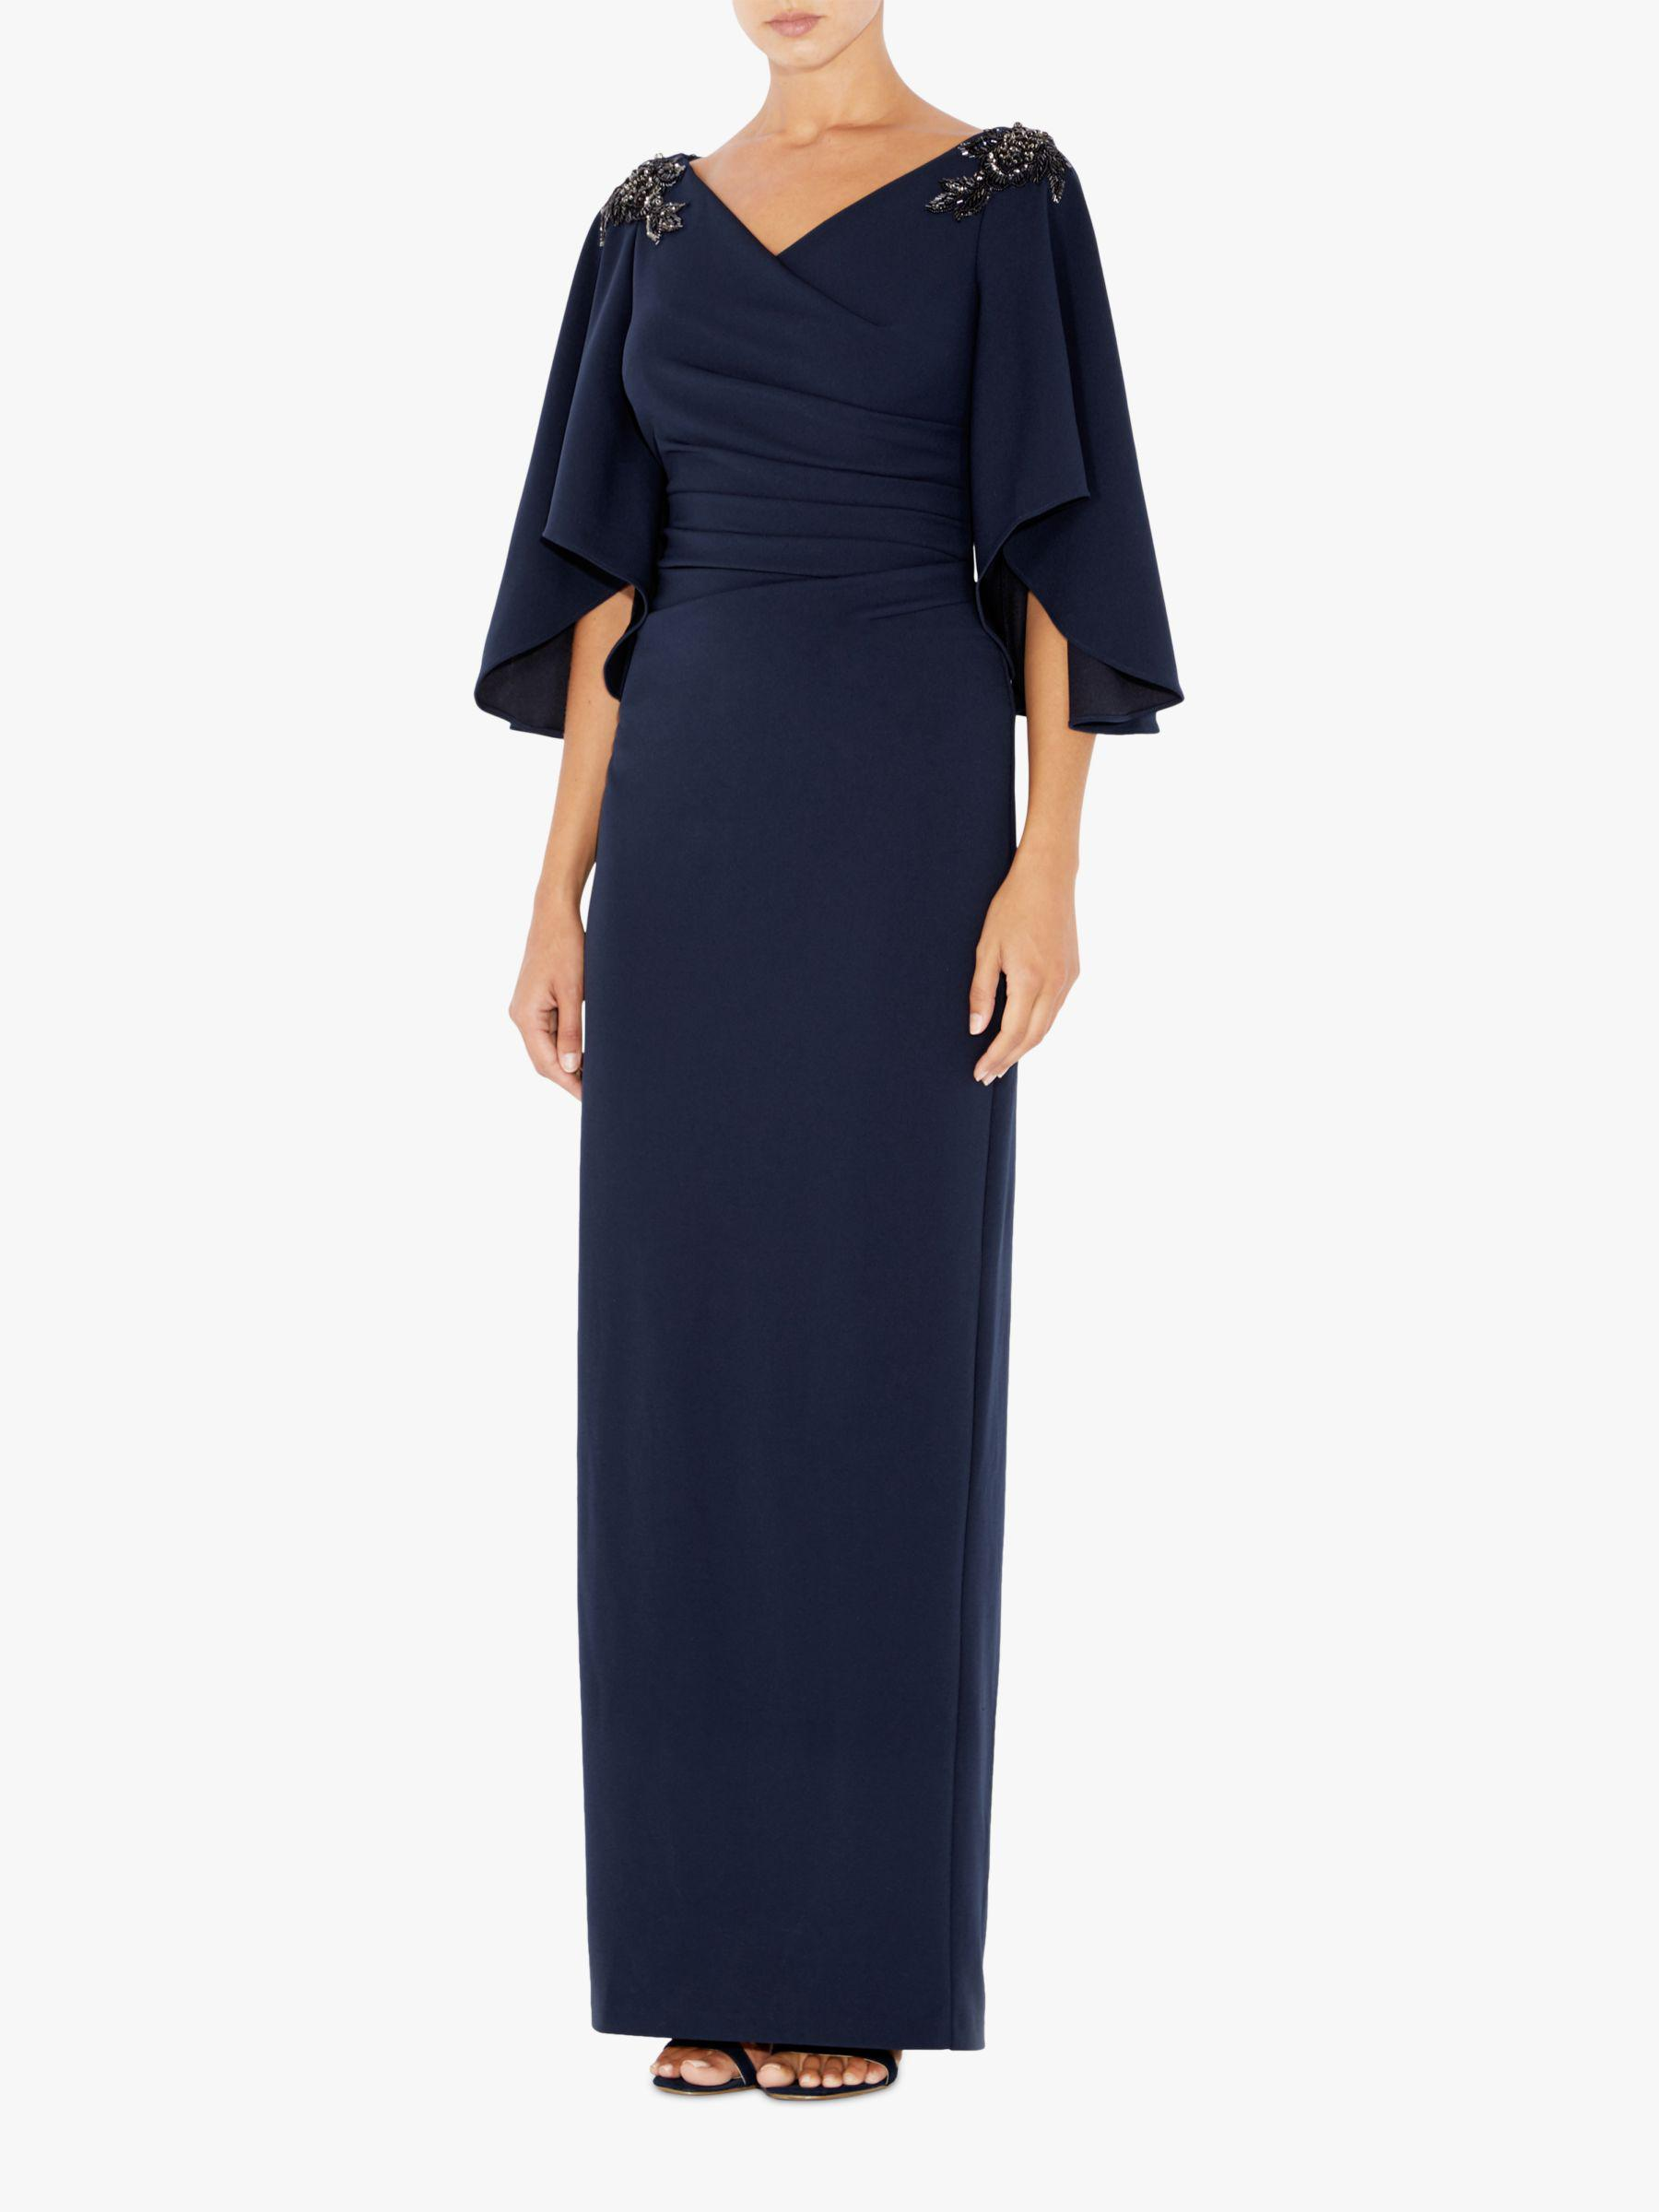 Adrianna Papell Ruched Embellished Dress In Blue Lyst